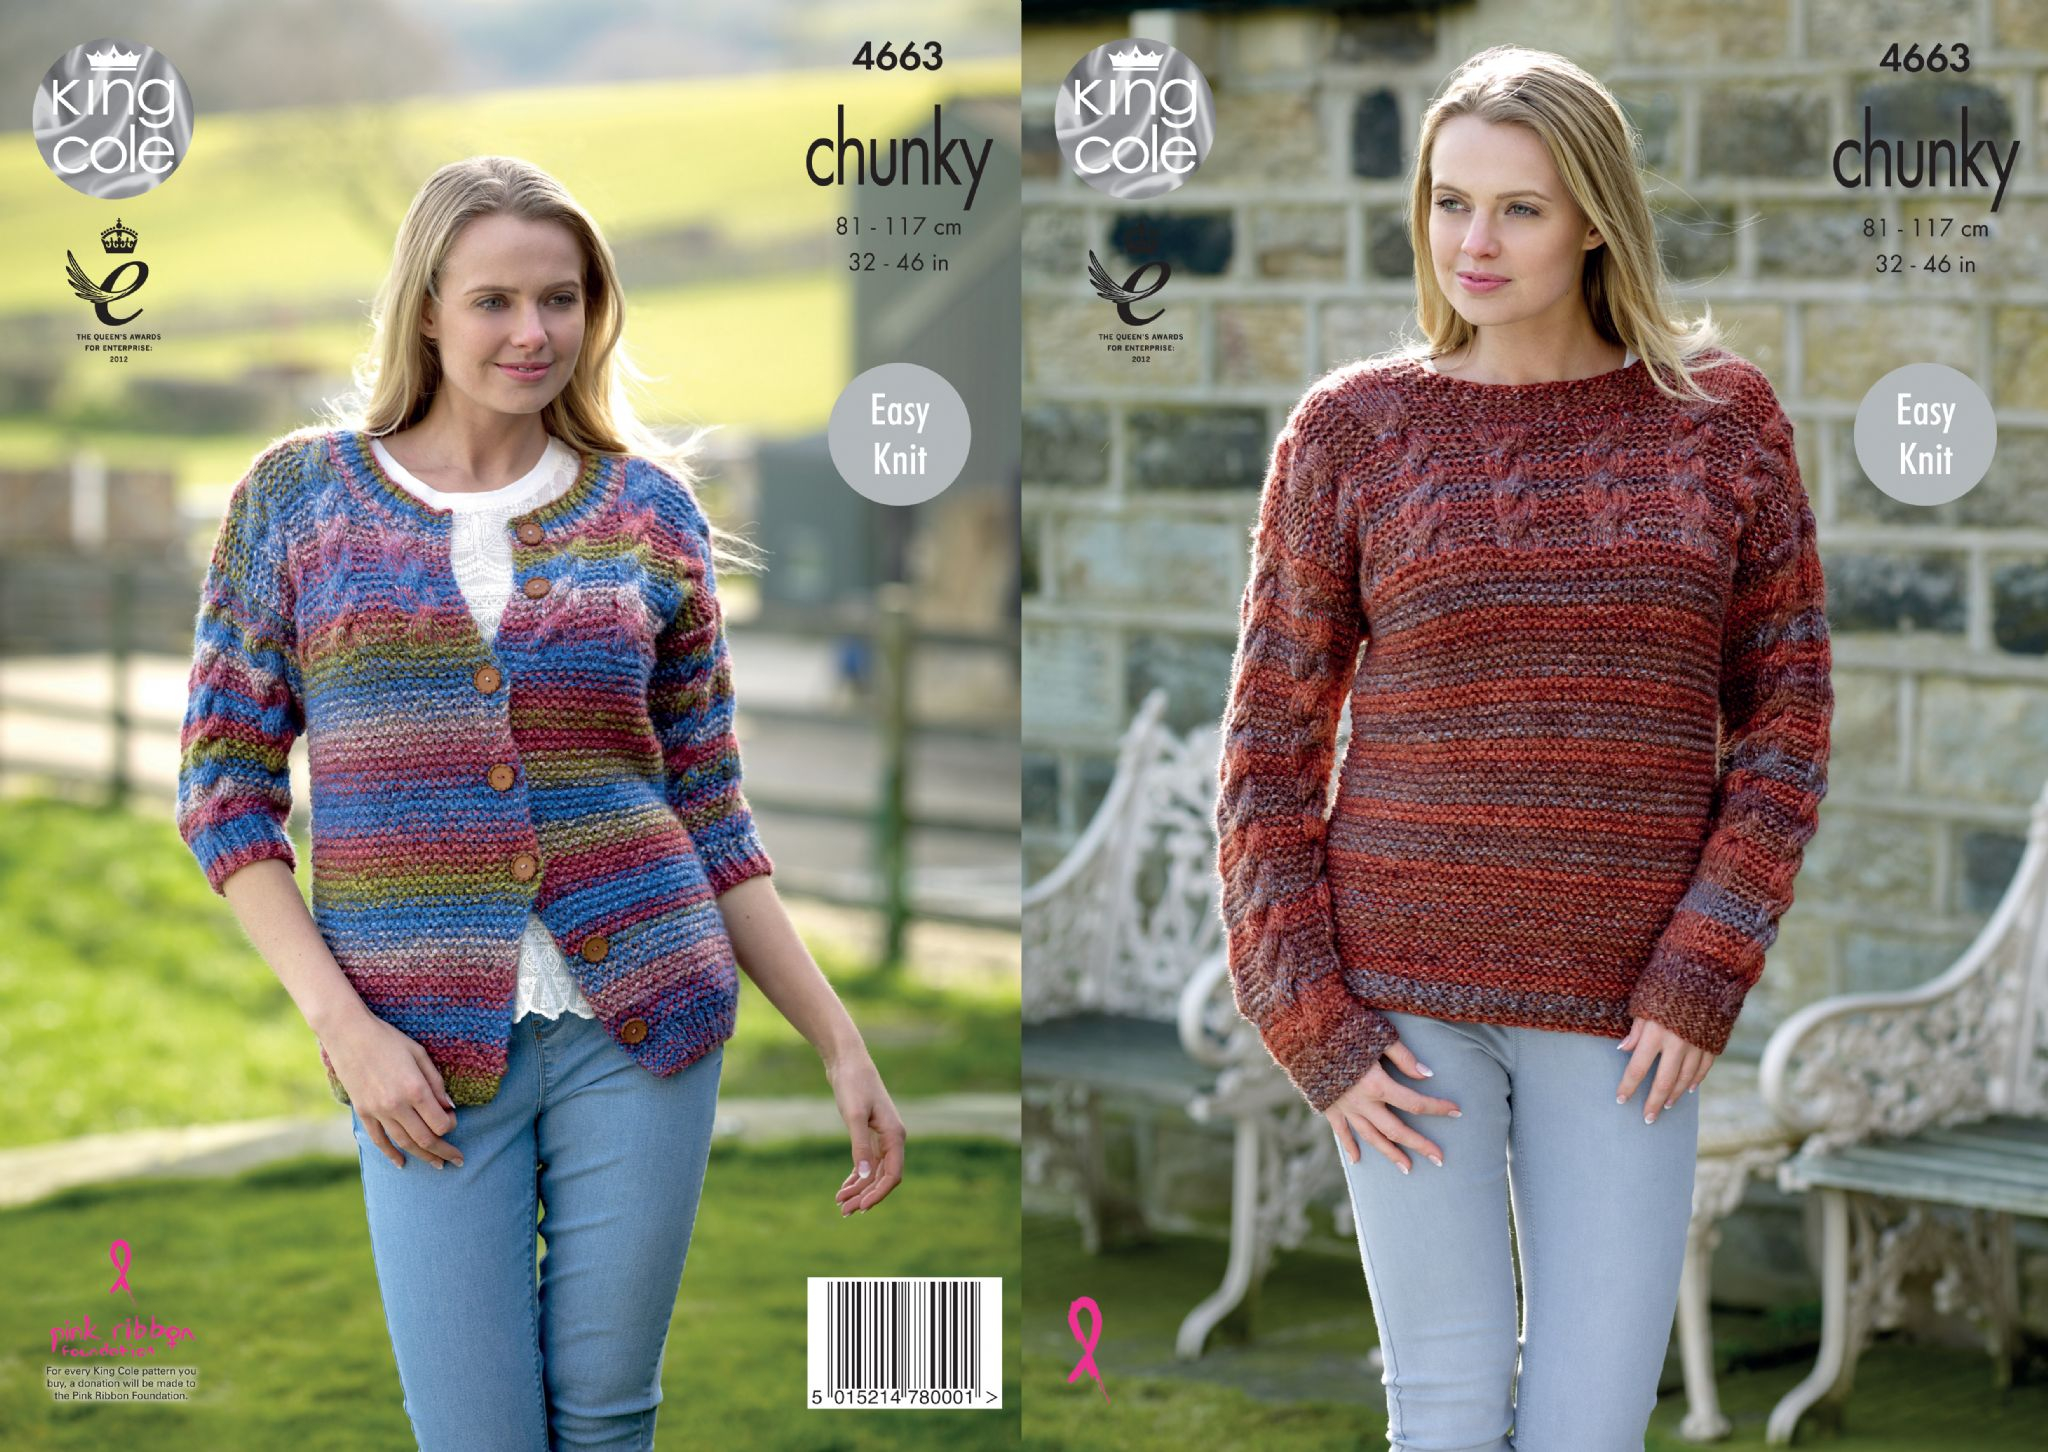 Knit Cardigan Pattern 4663 King Cole Corona Chunky Easy Knit Sweater Cardigan Knitting Pattern Chest 32 To 46